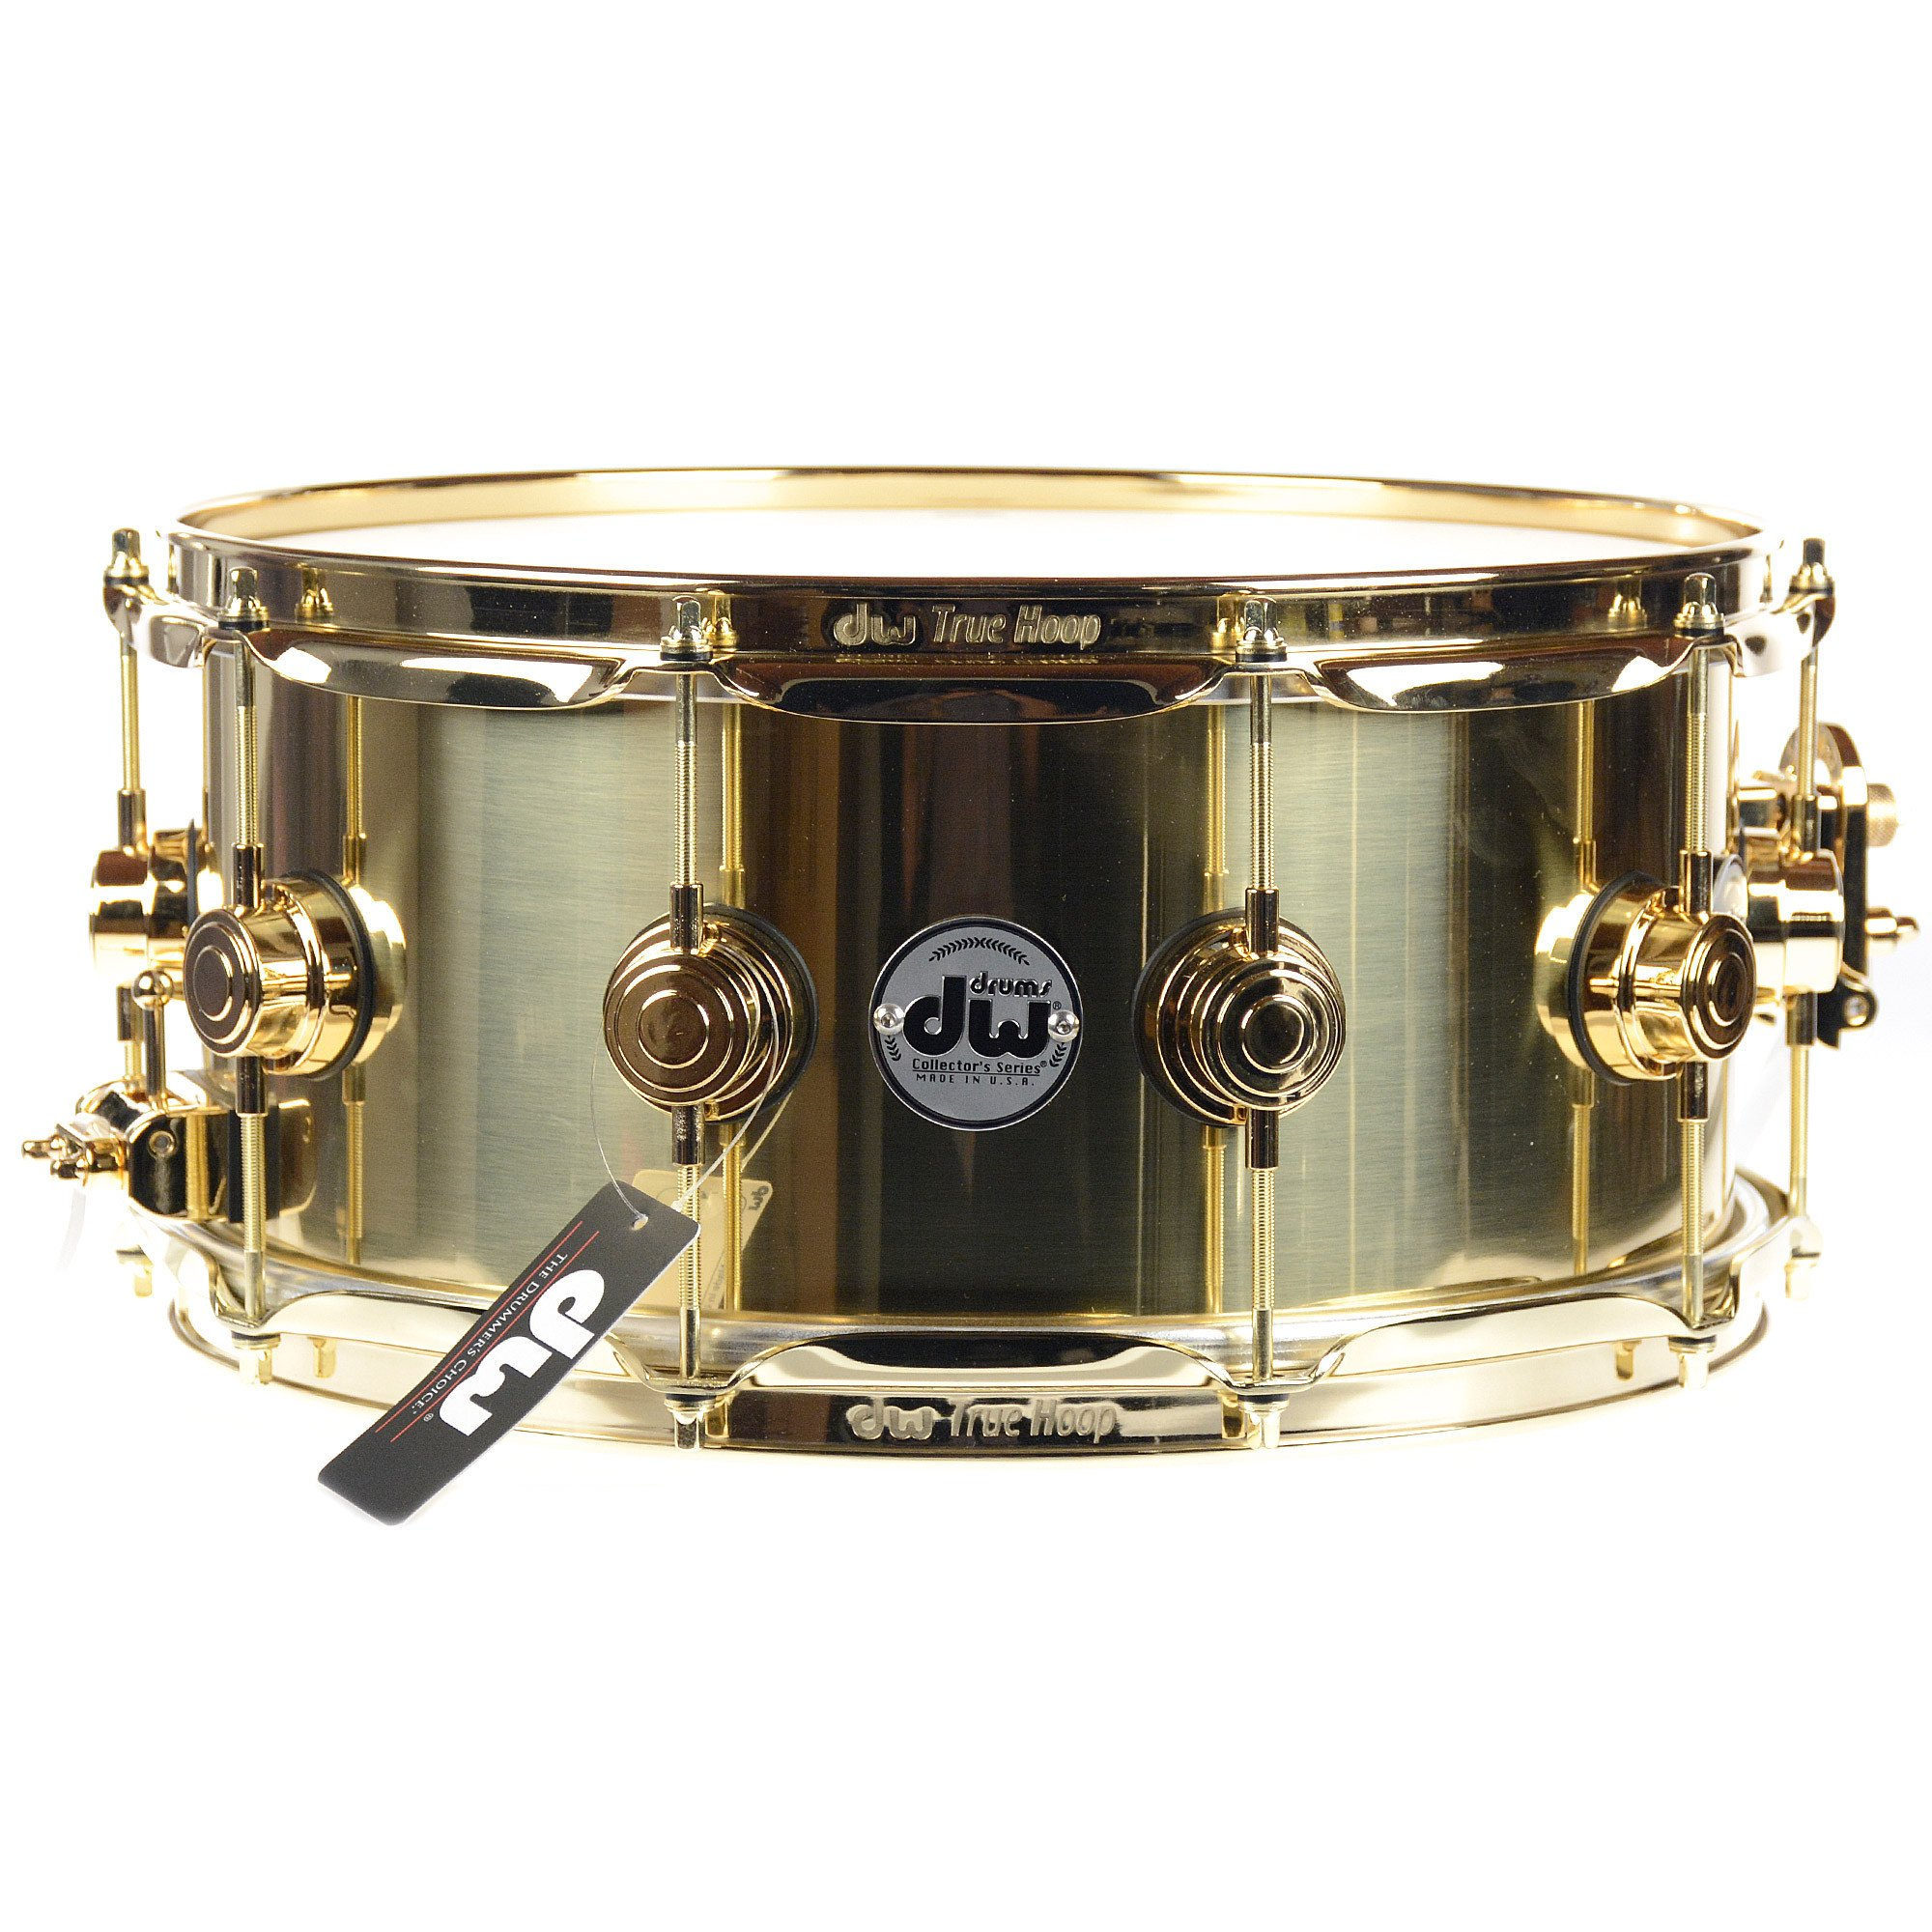 DW 6.5X14 Brass Polished Snare Drum w/ Gold Hardware